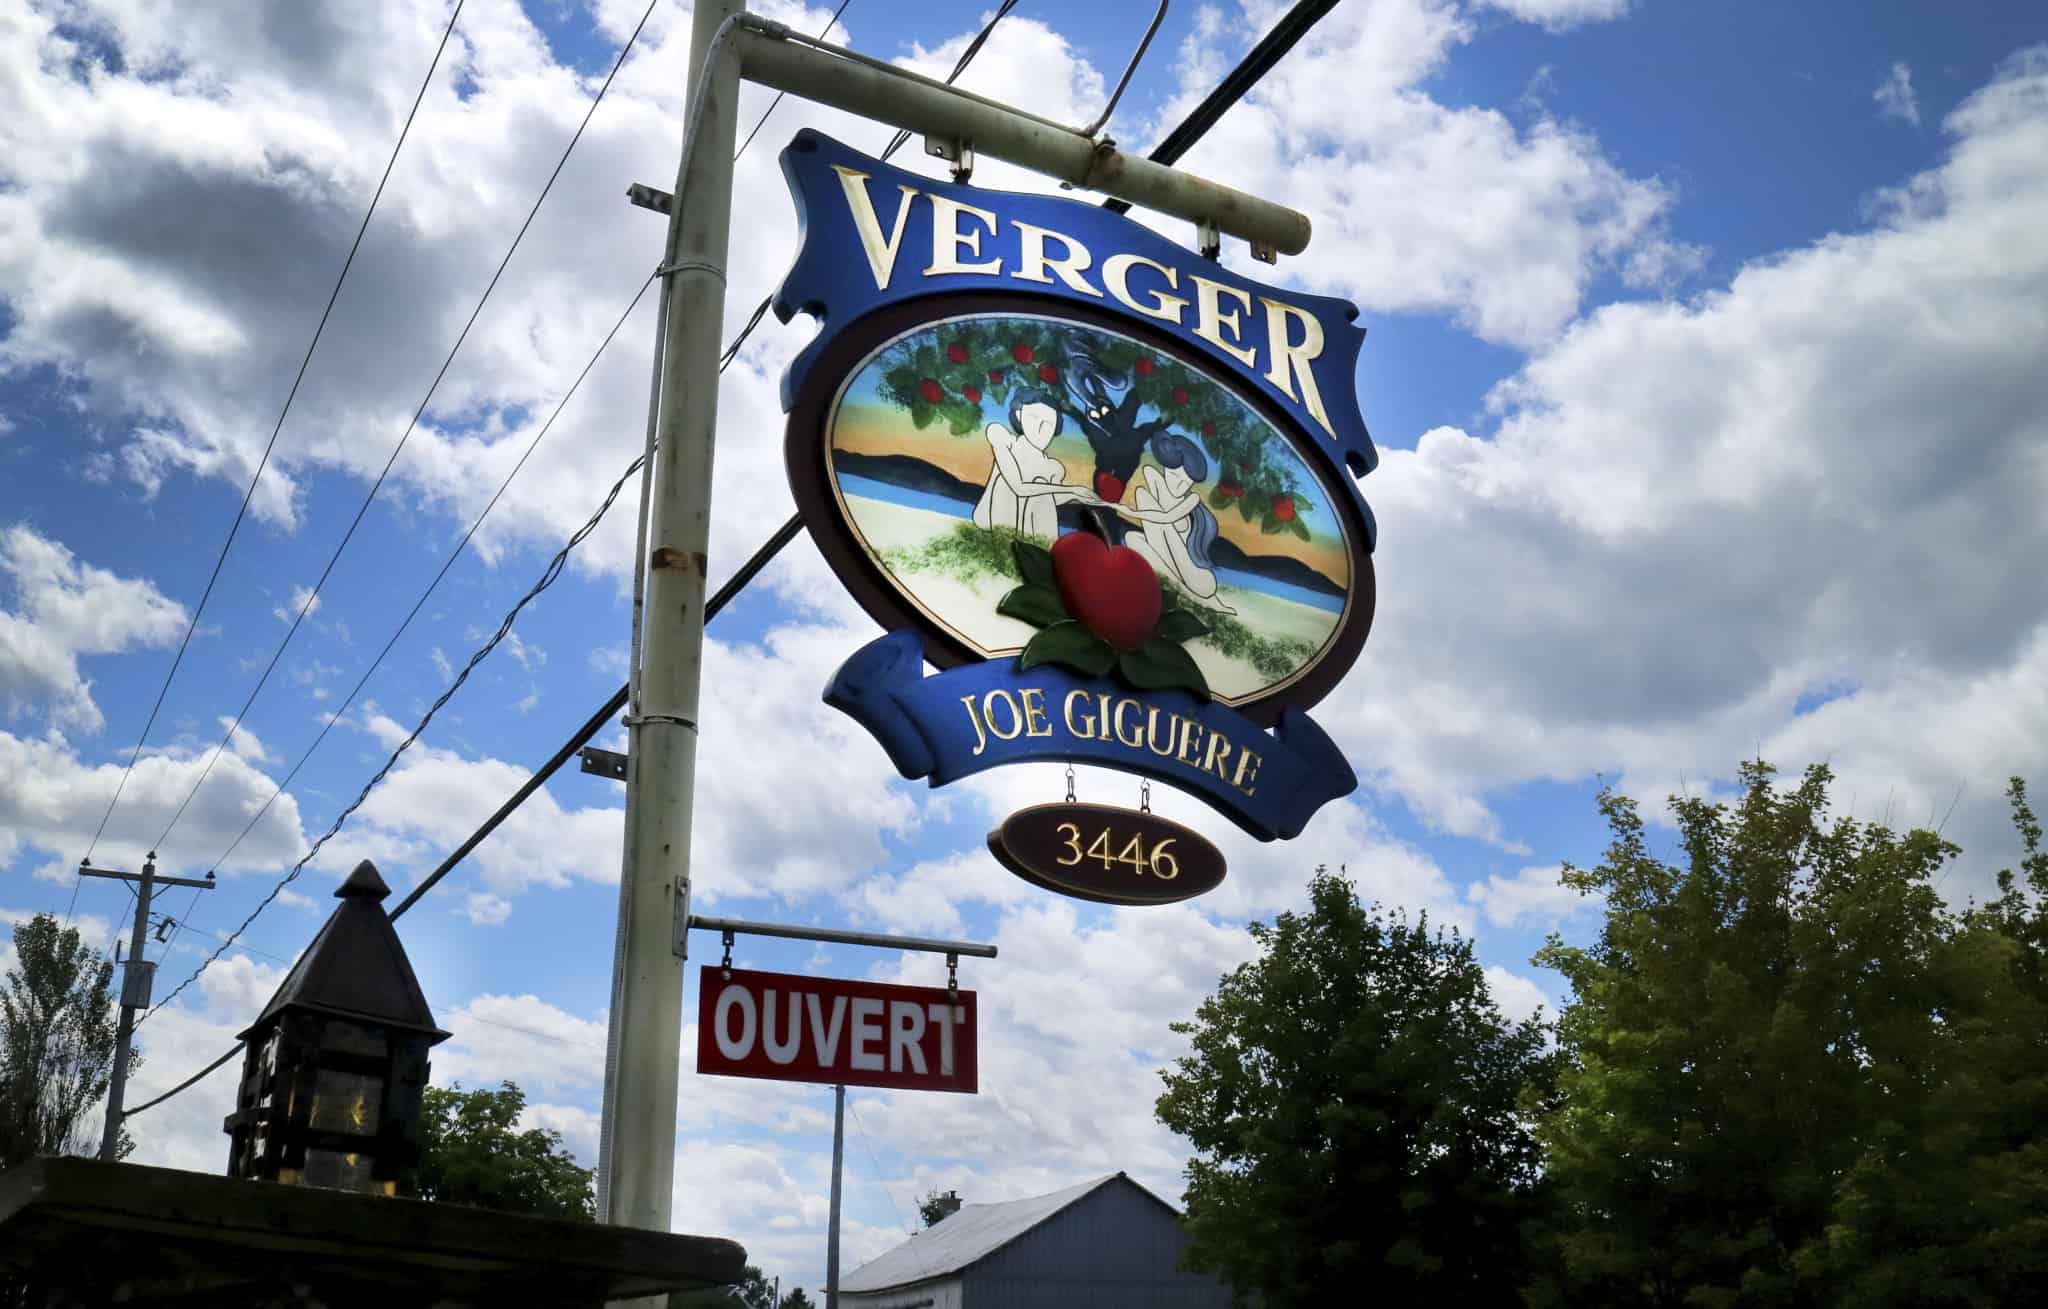 Quebec_Verger Joe Giguere_sign